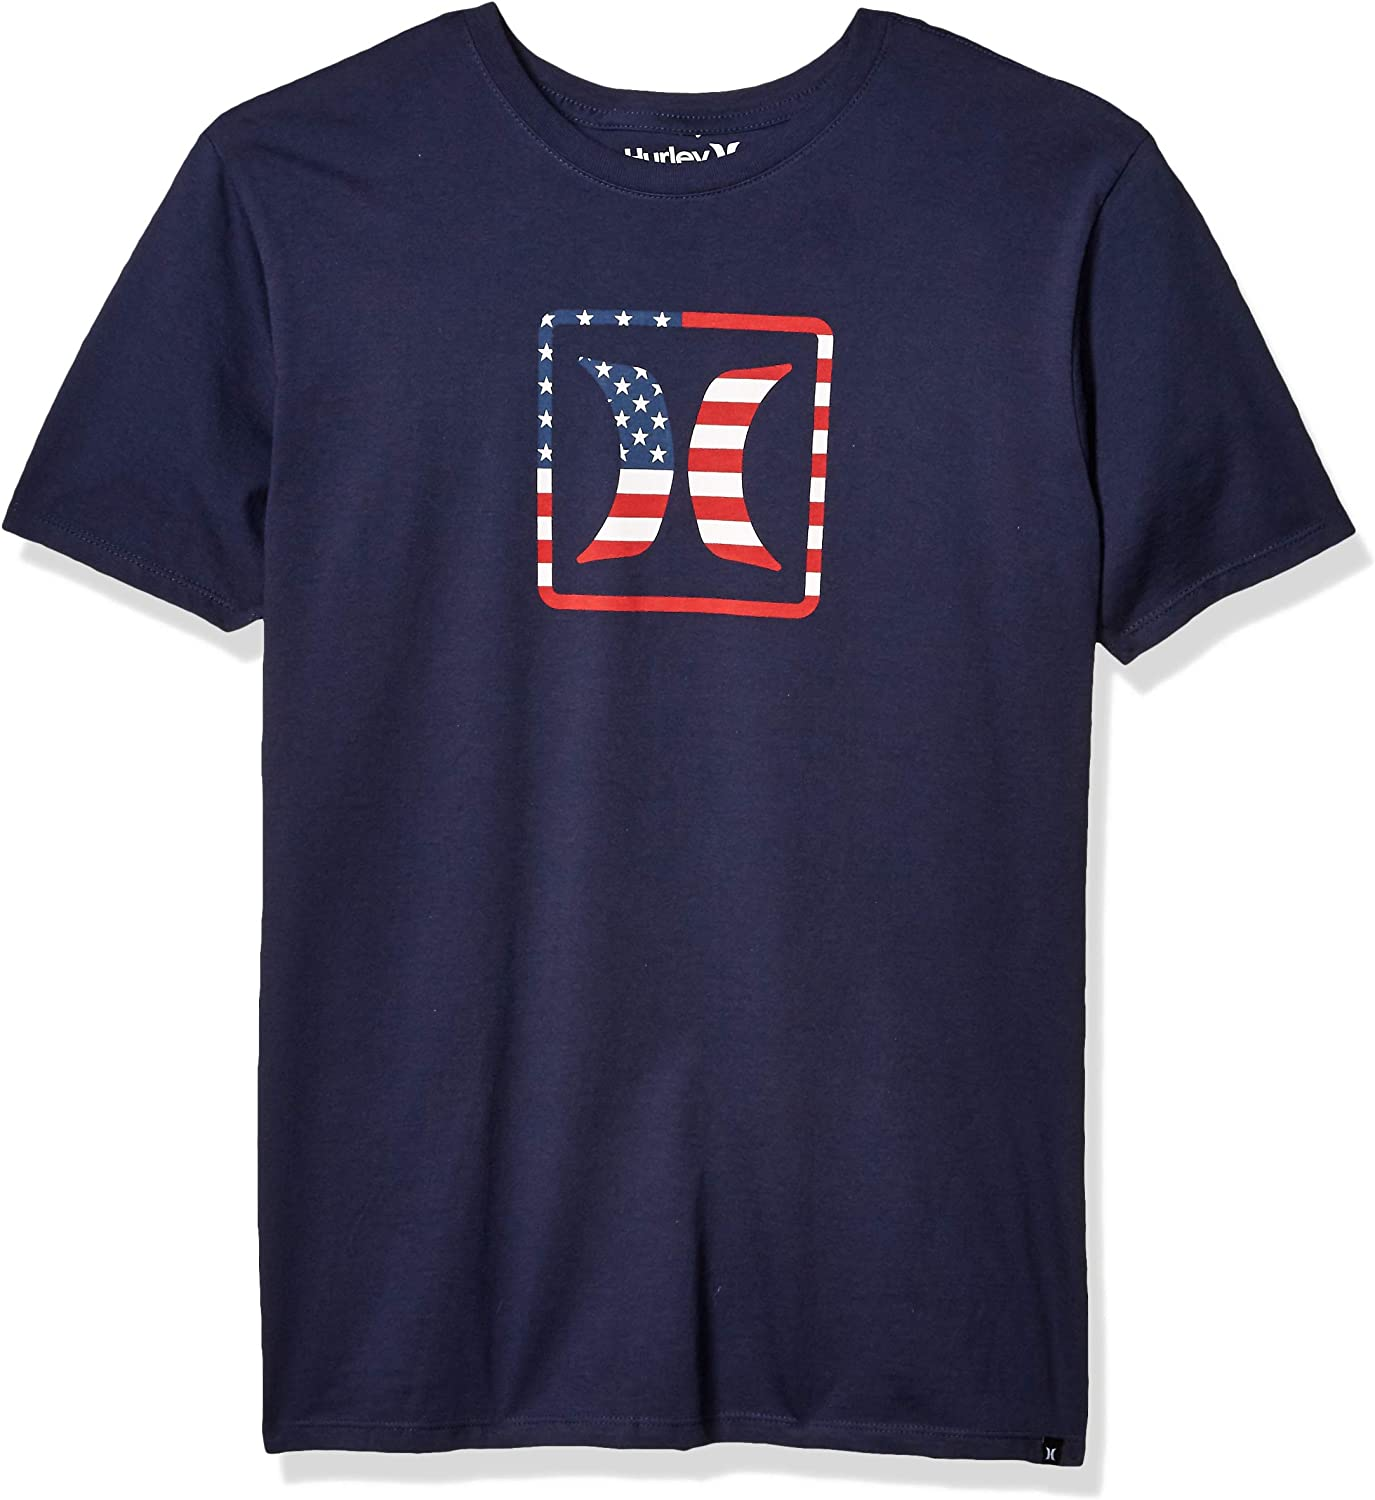 Hurley Men's Premium Block USA Short Sleeve Tee